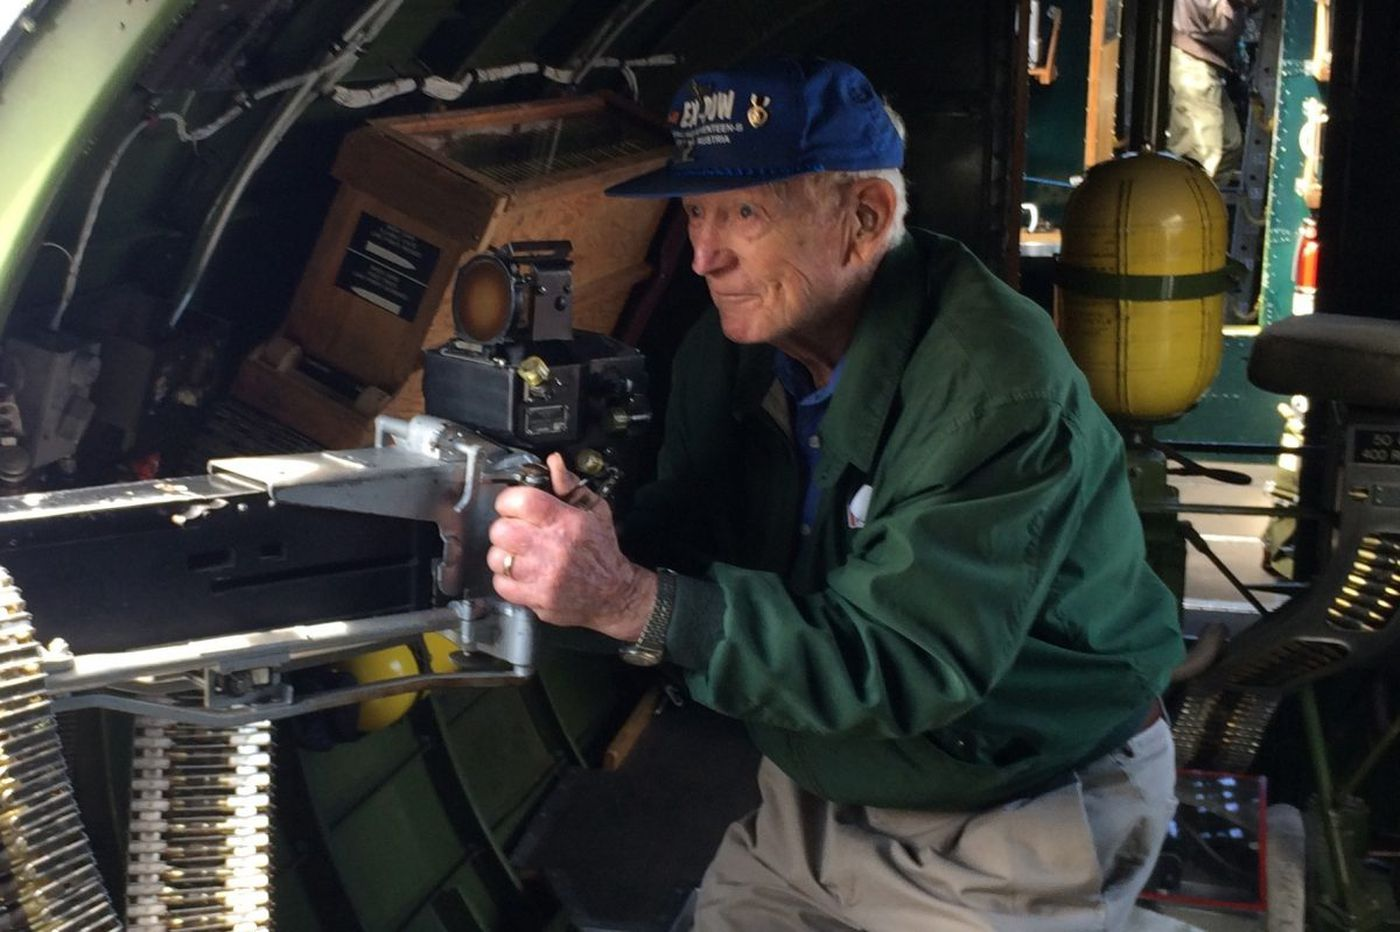 Francis Dewey Burke, 93, World War II gunner, police official, and father of TV star Chris Burke